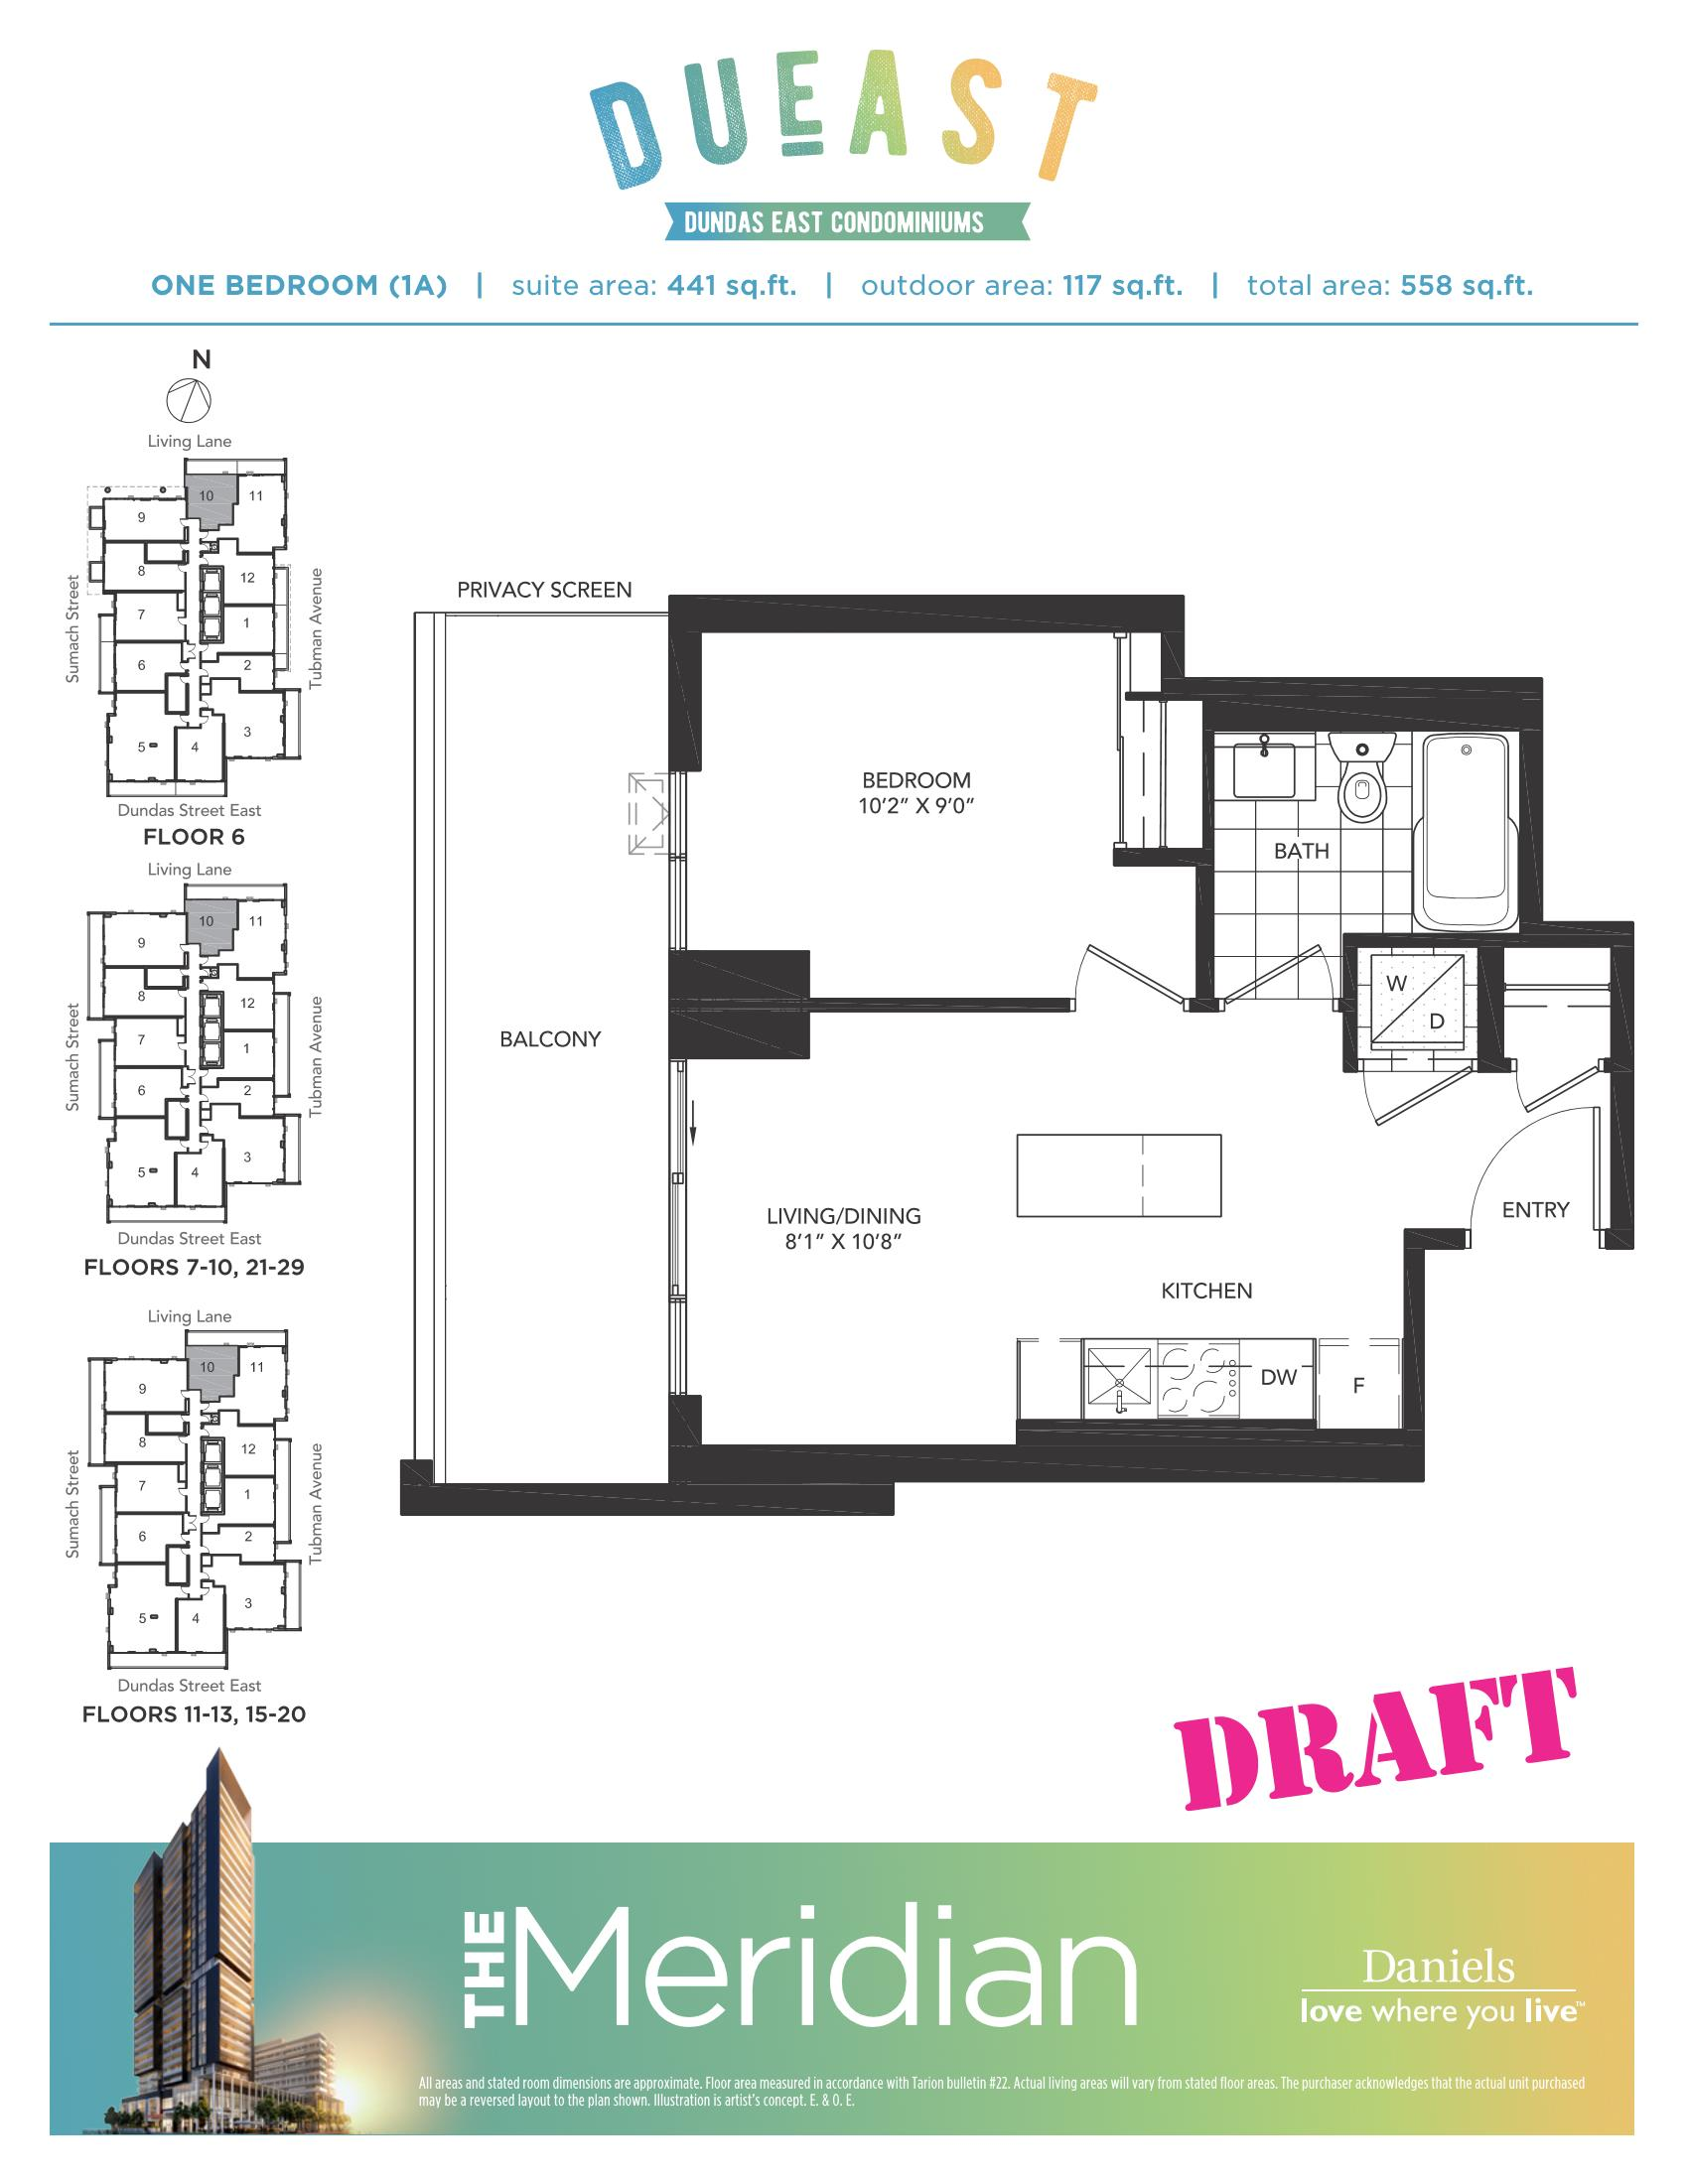 Dueast condos floorplans pricing platinum access for 1 bedroom condo floor plans